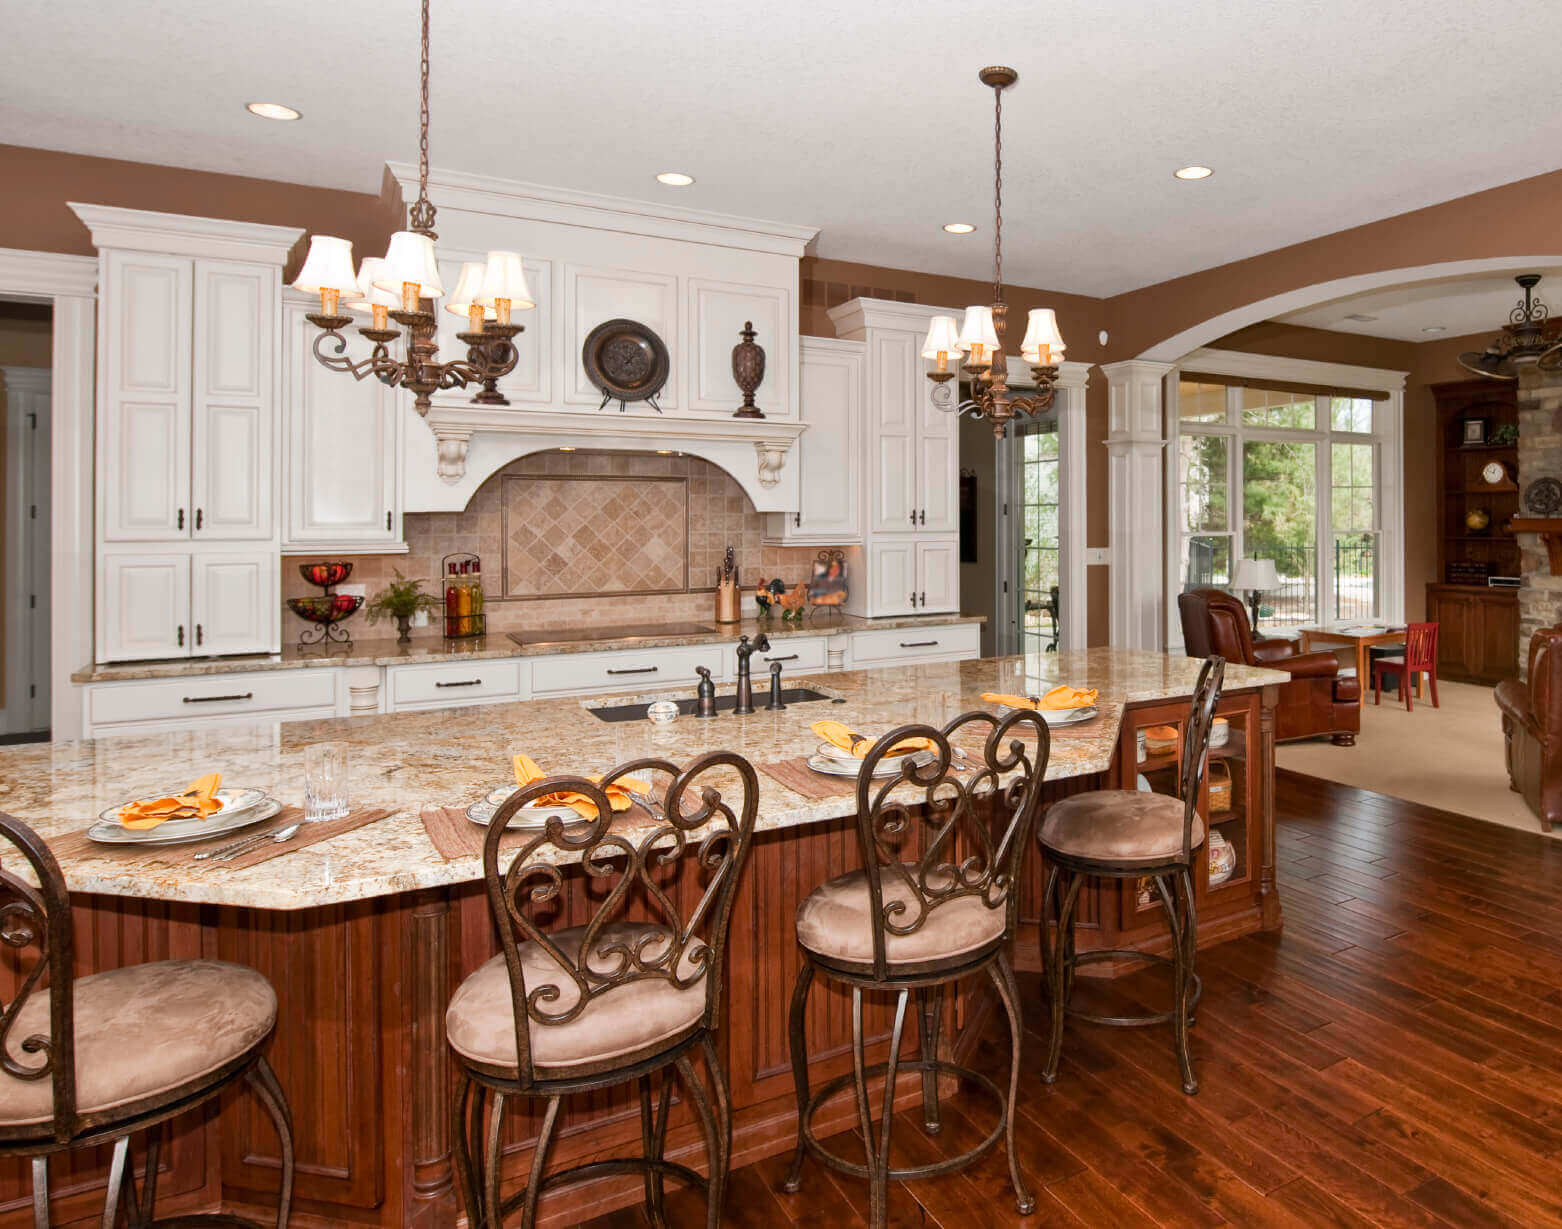 Home to a large sink, recycling bins, and elegant seating for four, this large luxury kitchen island plays hard on special occasions and works hard for the family during the week. It offers plenty of serving space for entertaining